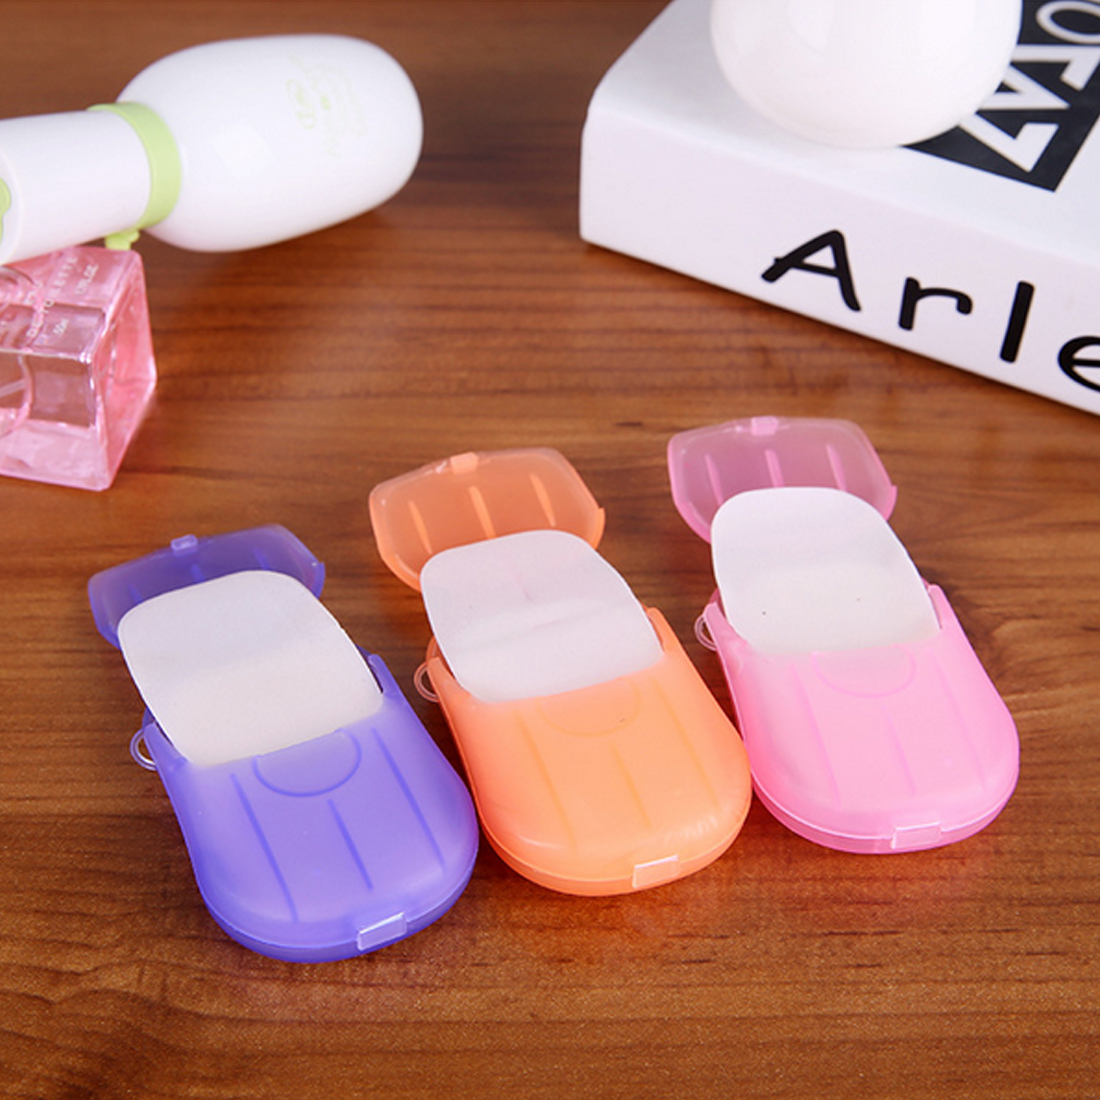 Portable Outdoor Travel Hand Washing Cleaning Scented Slice Sheets Mini Paper Soap Random 20pcs Disposable Boxed Soap Paper